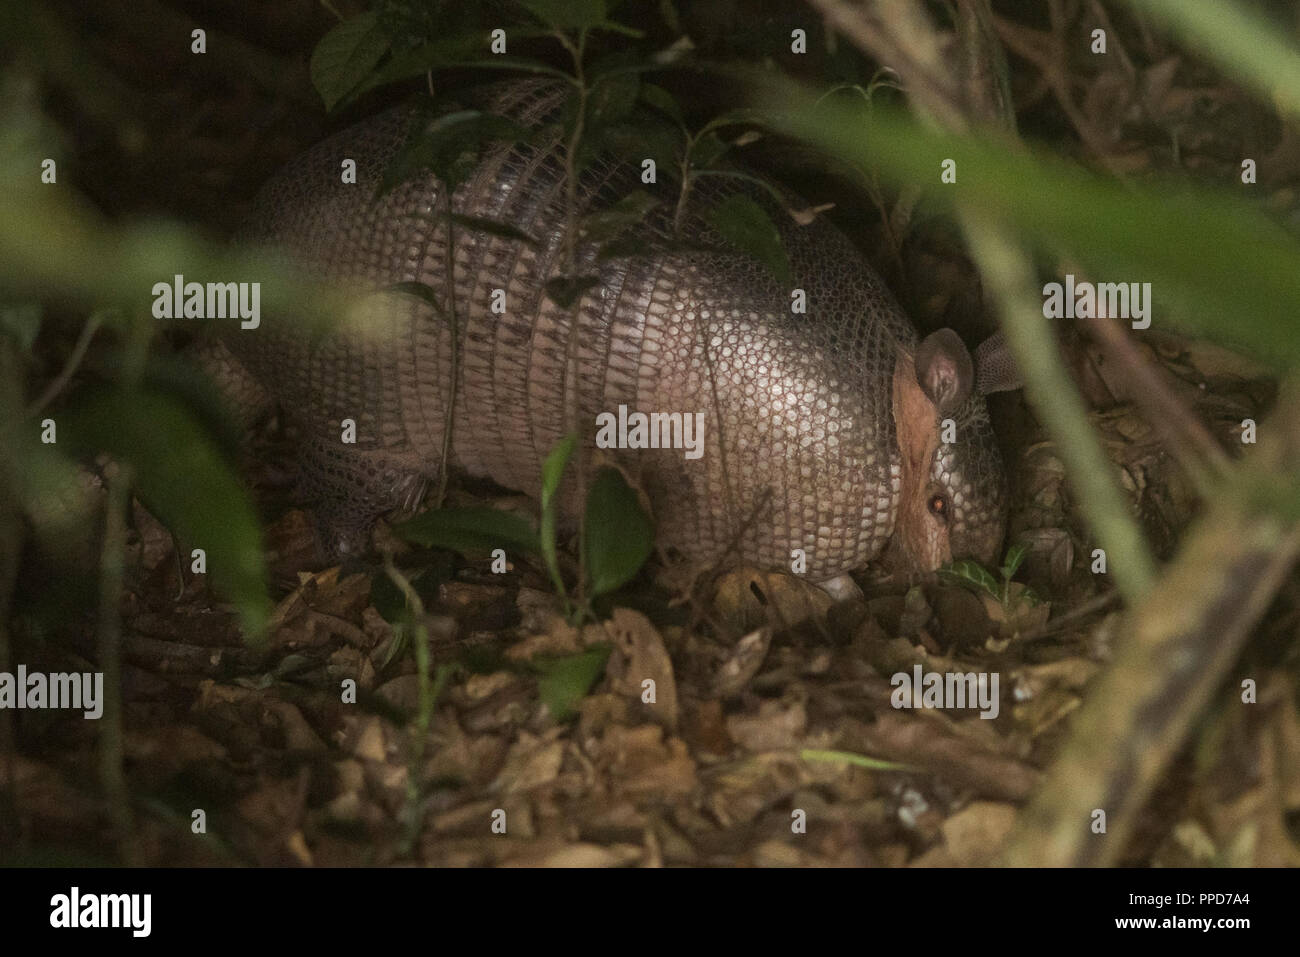 A  giant armadillo (Priodontes maximus) digging in the leaf litter at night in the Peruvian rainforest. - Stock Image